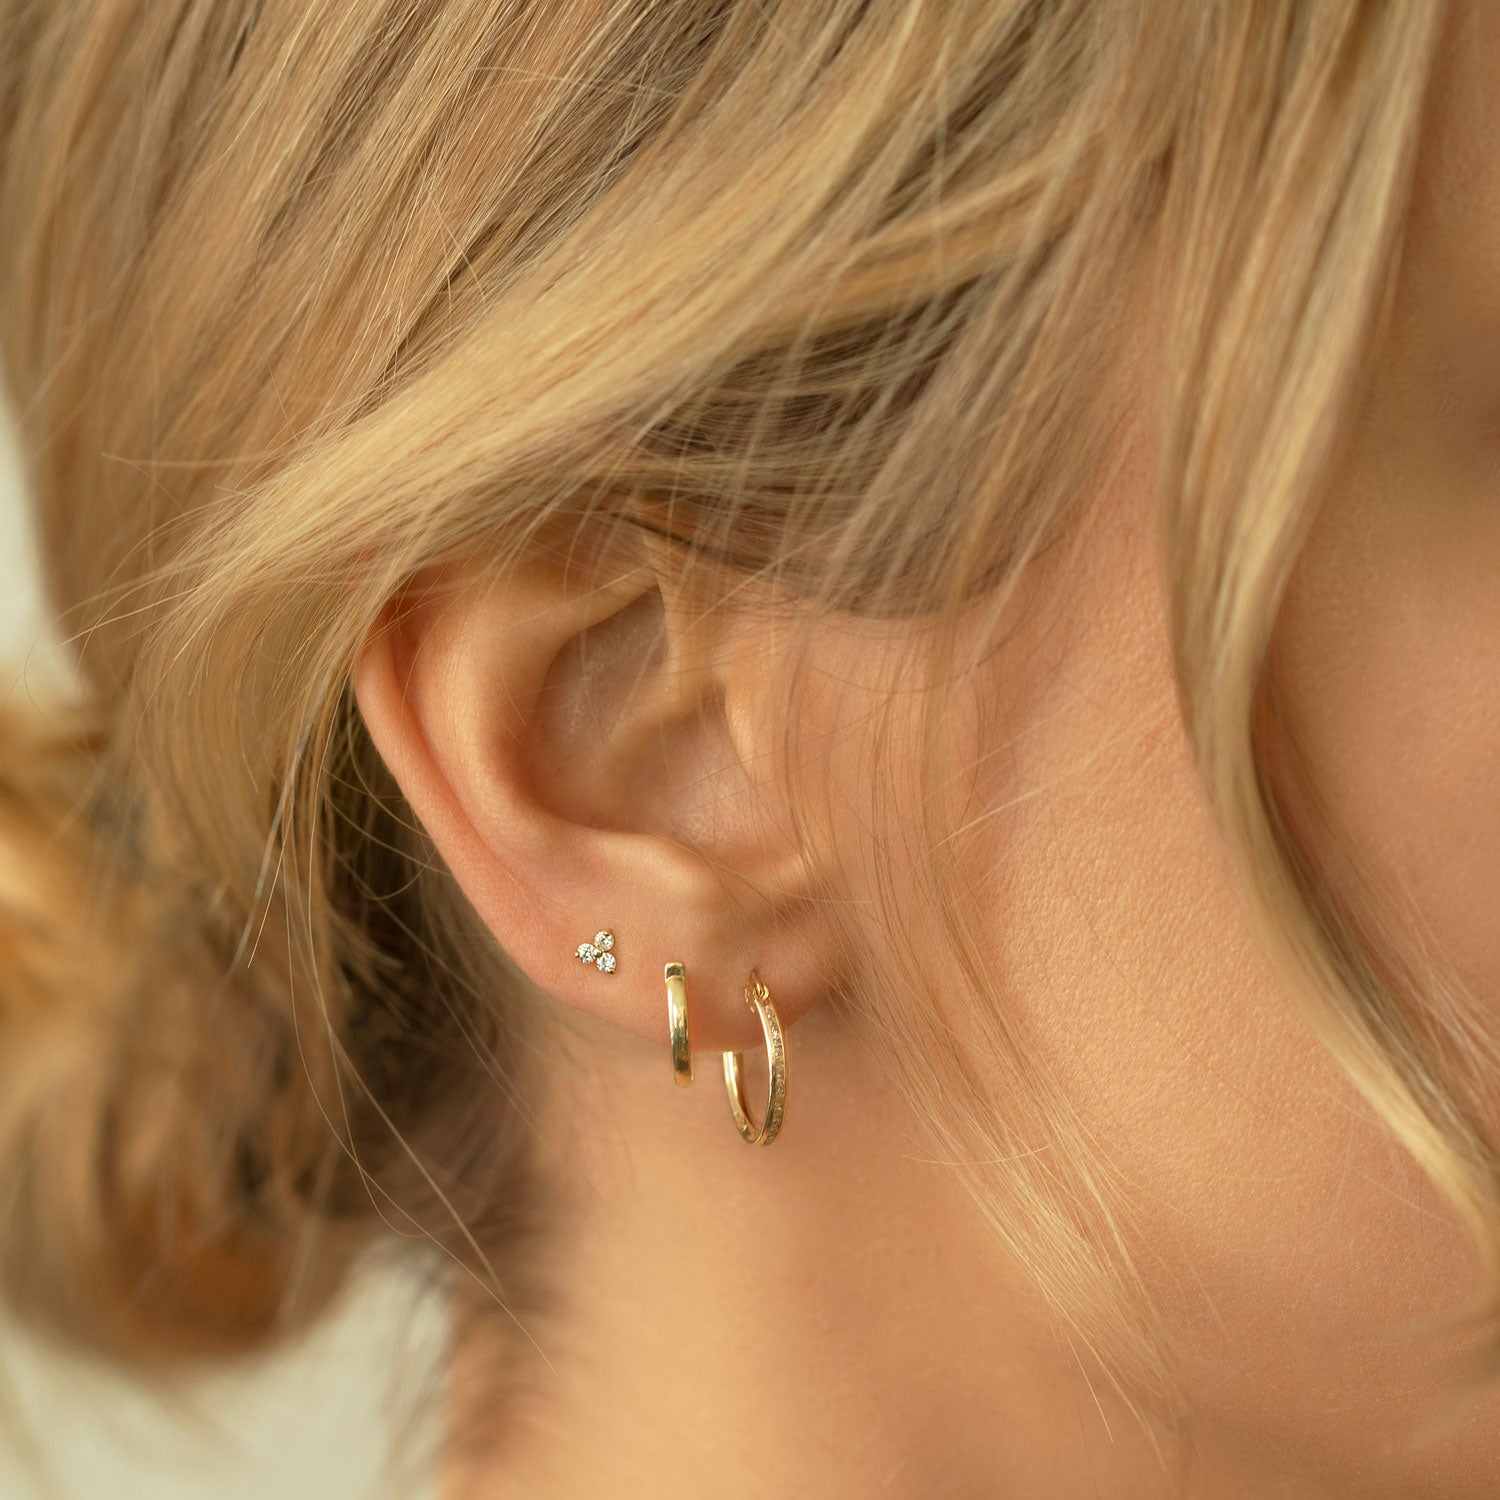 caption: Model wearing 6.5mm on second hole